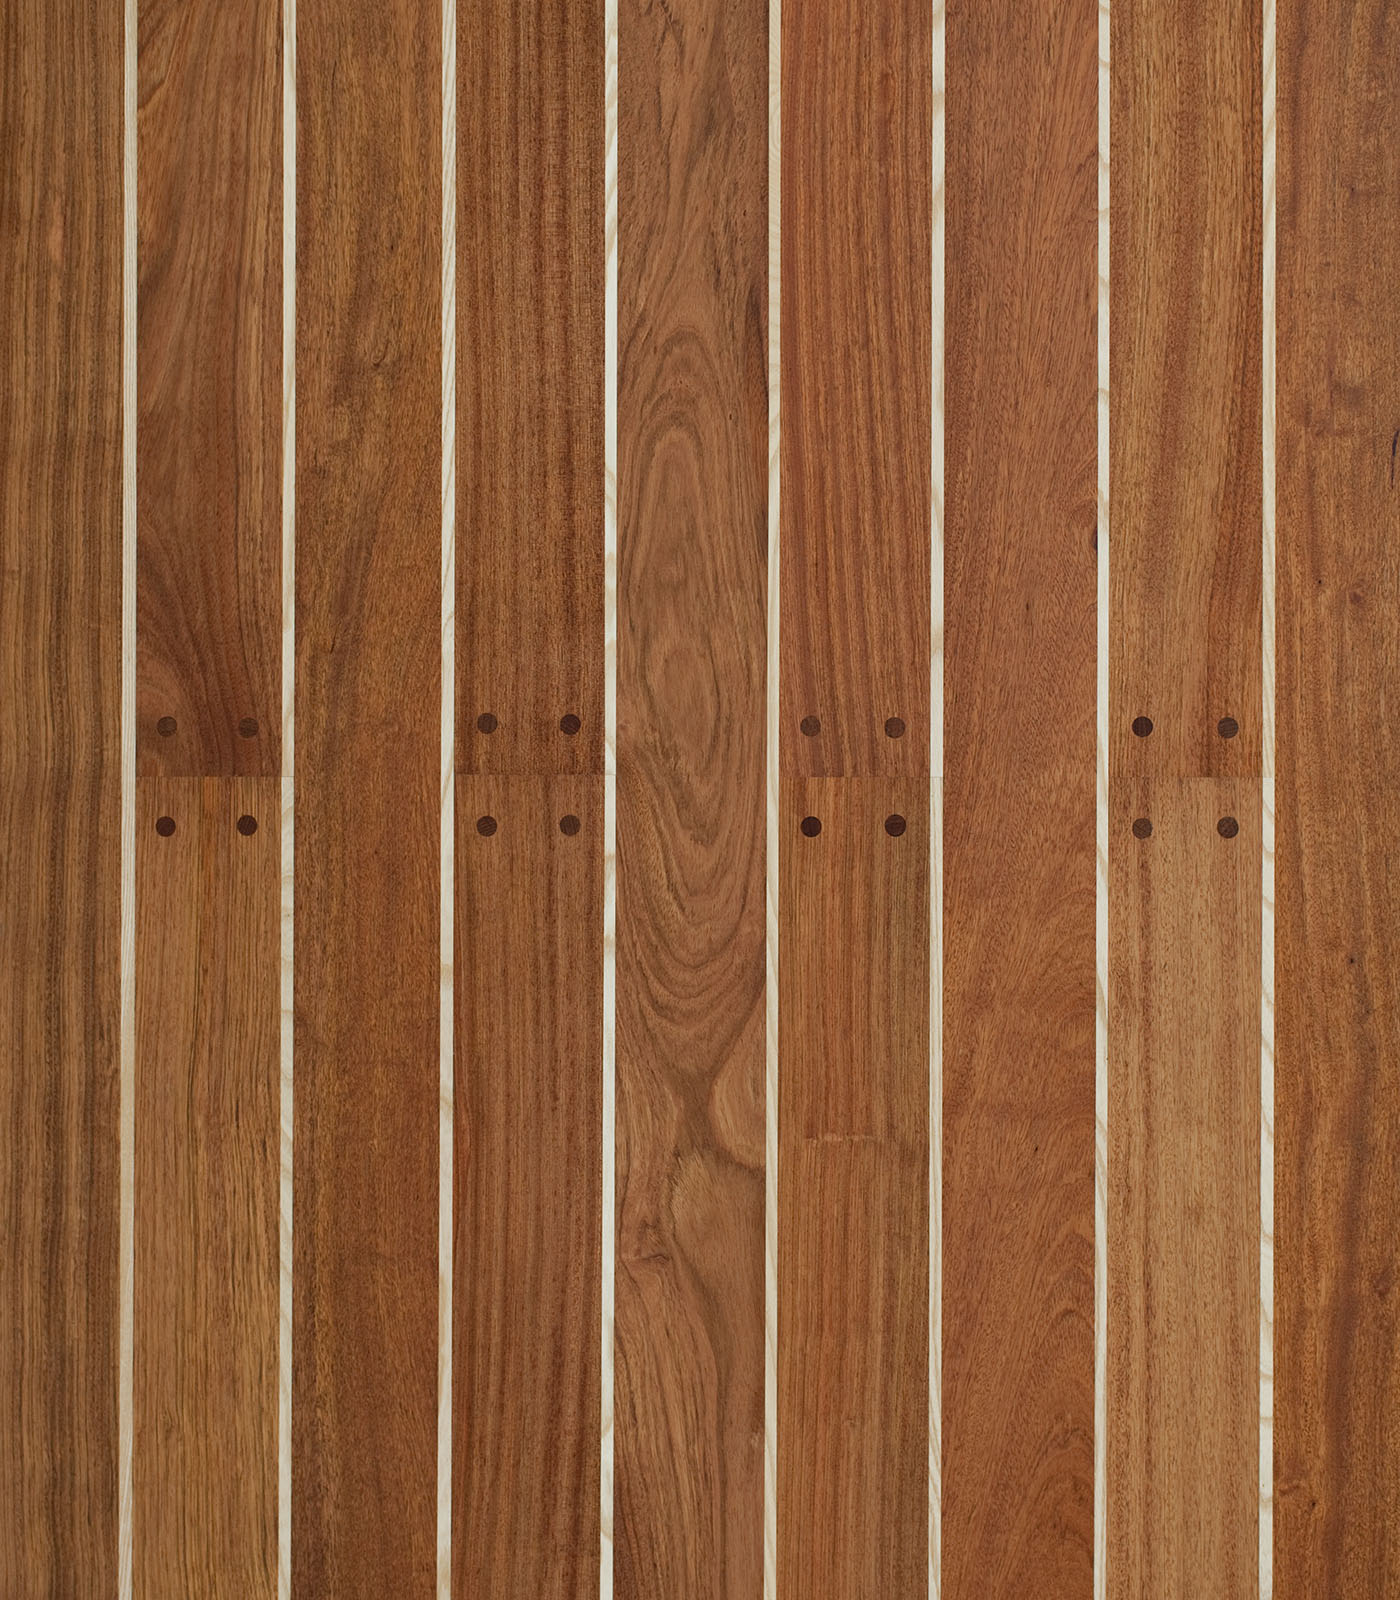 Wenge Oak Solid Wood Flooring shipsdeck kempas wenge | floorsndecks